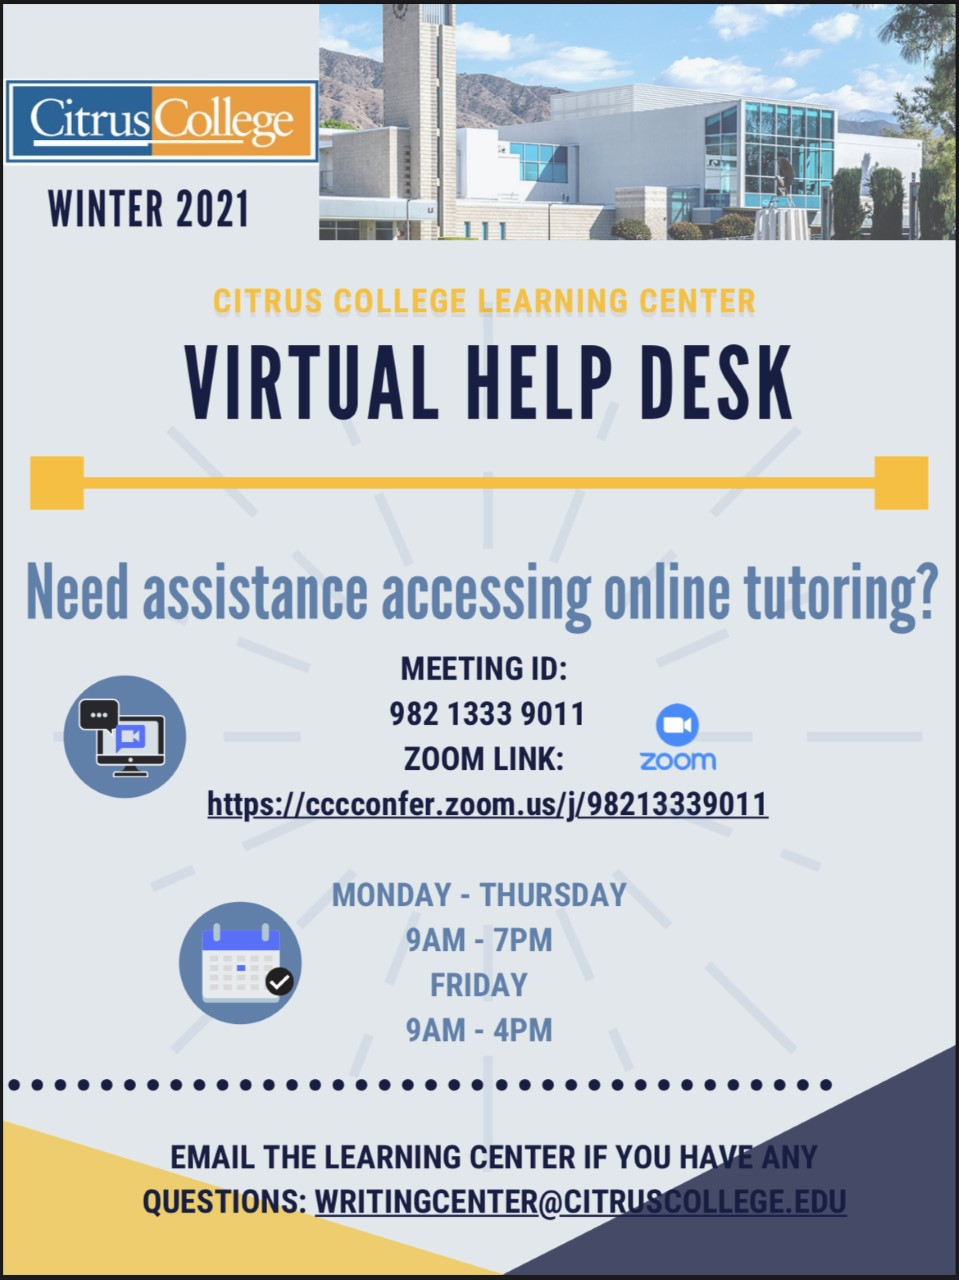 If you are unable to read or view this graphicbased flyer, please contact Nicole Villa, Learning Center supervisor, at nvilla@citruscollege.edu. You will be provided with an accessible, compliant version, per ADA Website Compliance and Web Content Accessibility Guidelines.